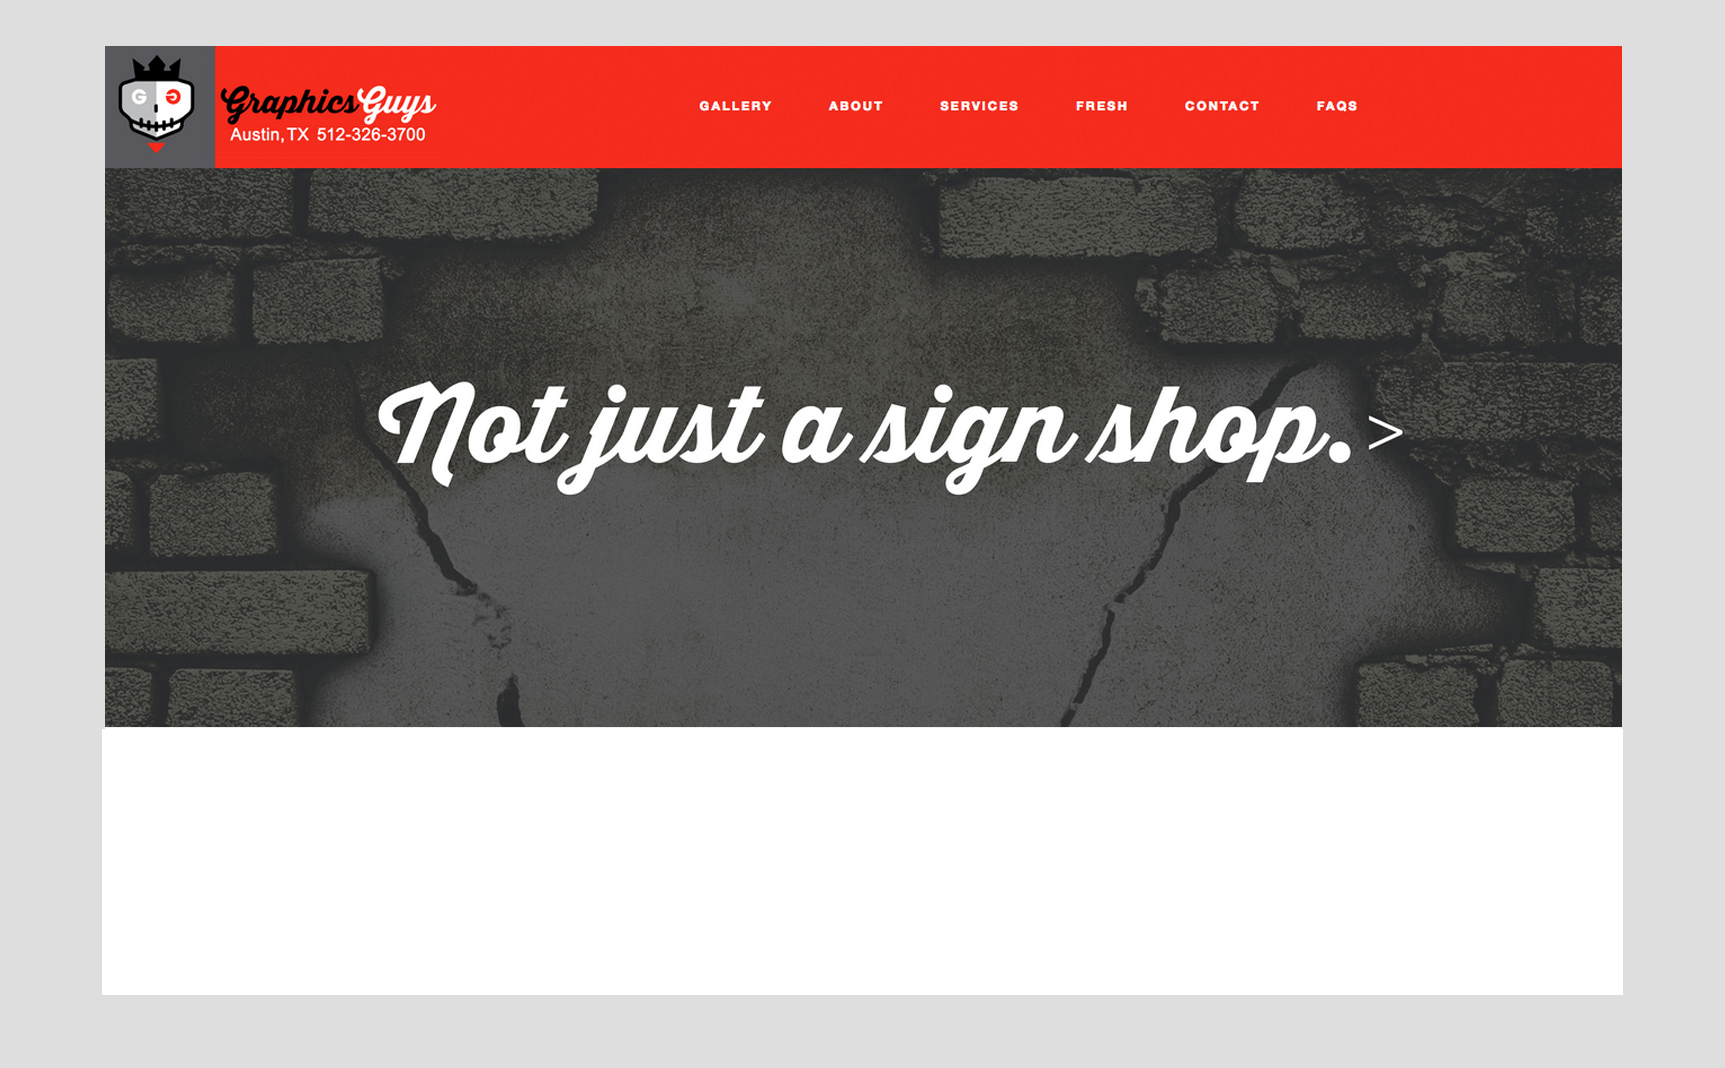 GraphicsGuys Website Design and Production